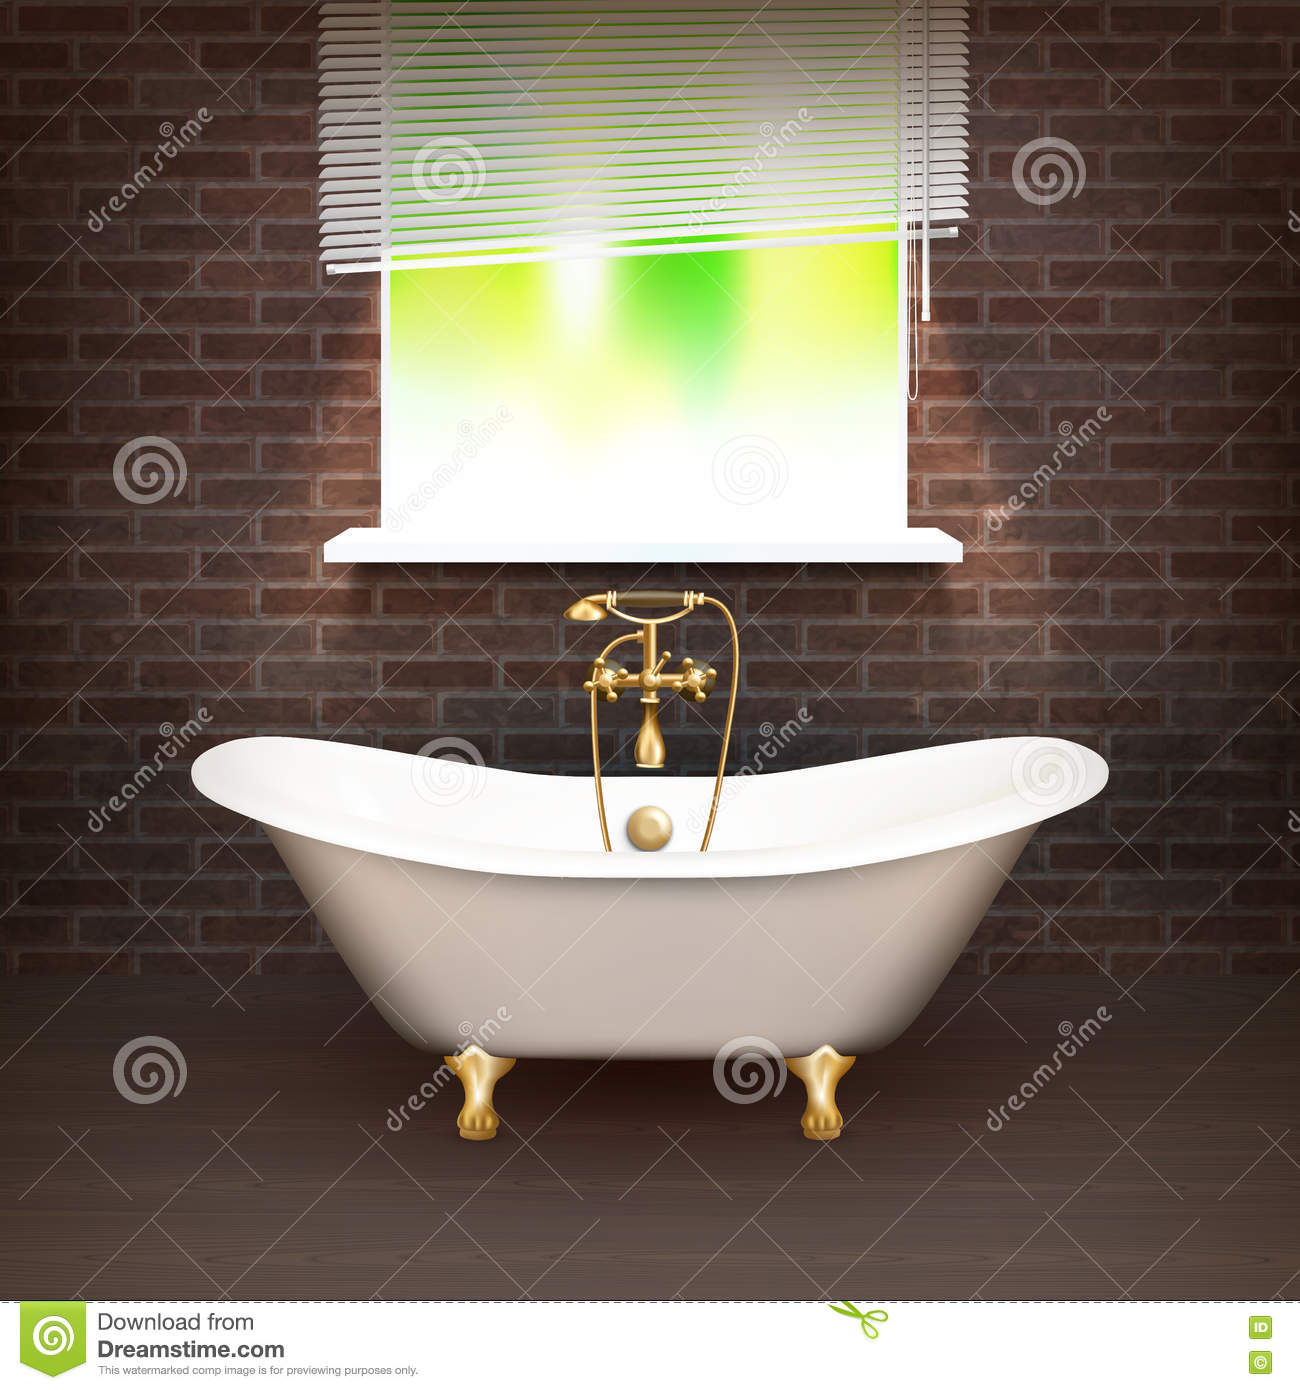 Realistic Bathroom Poster With Vintage Bathtub On Wooden Floor And A Brick Wall Across From The Window Vector Illustration